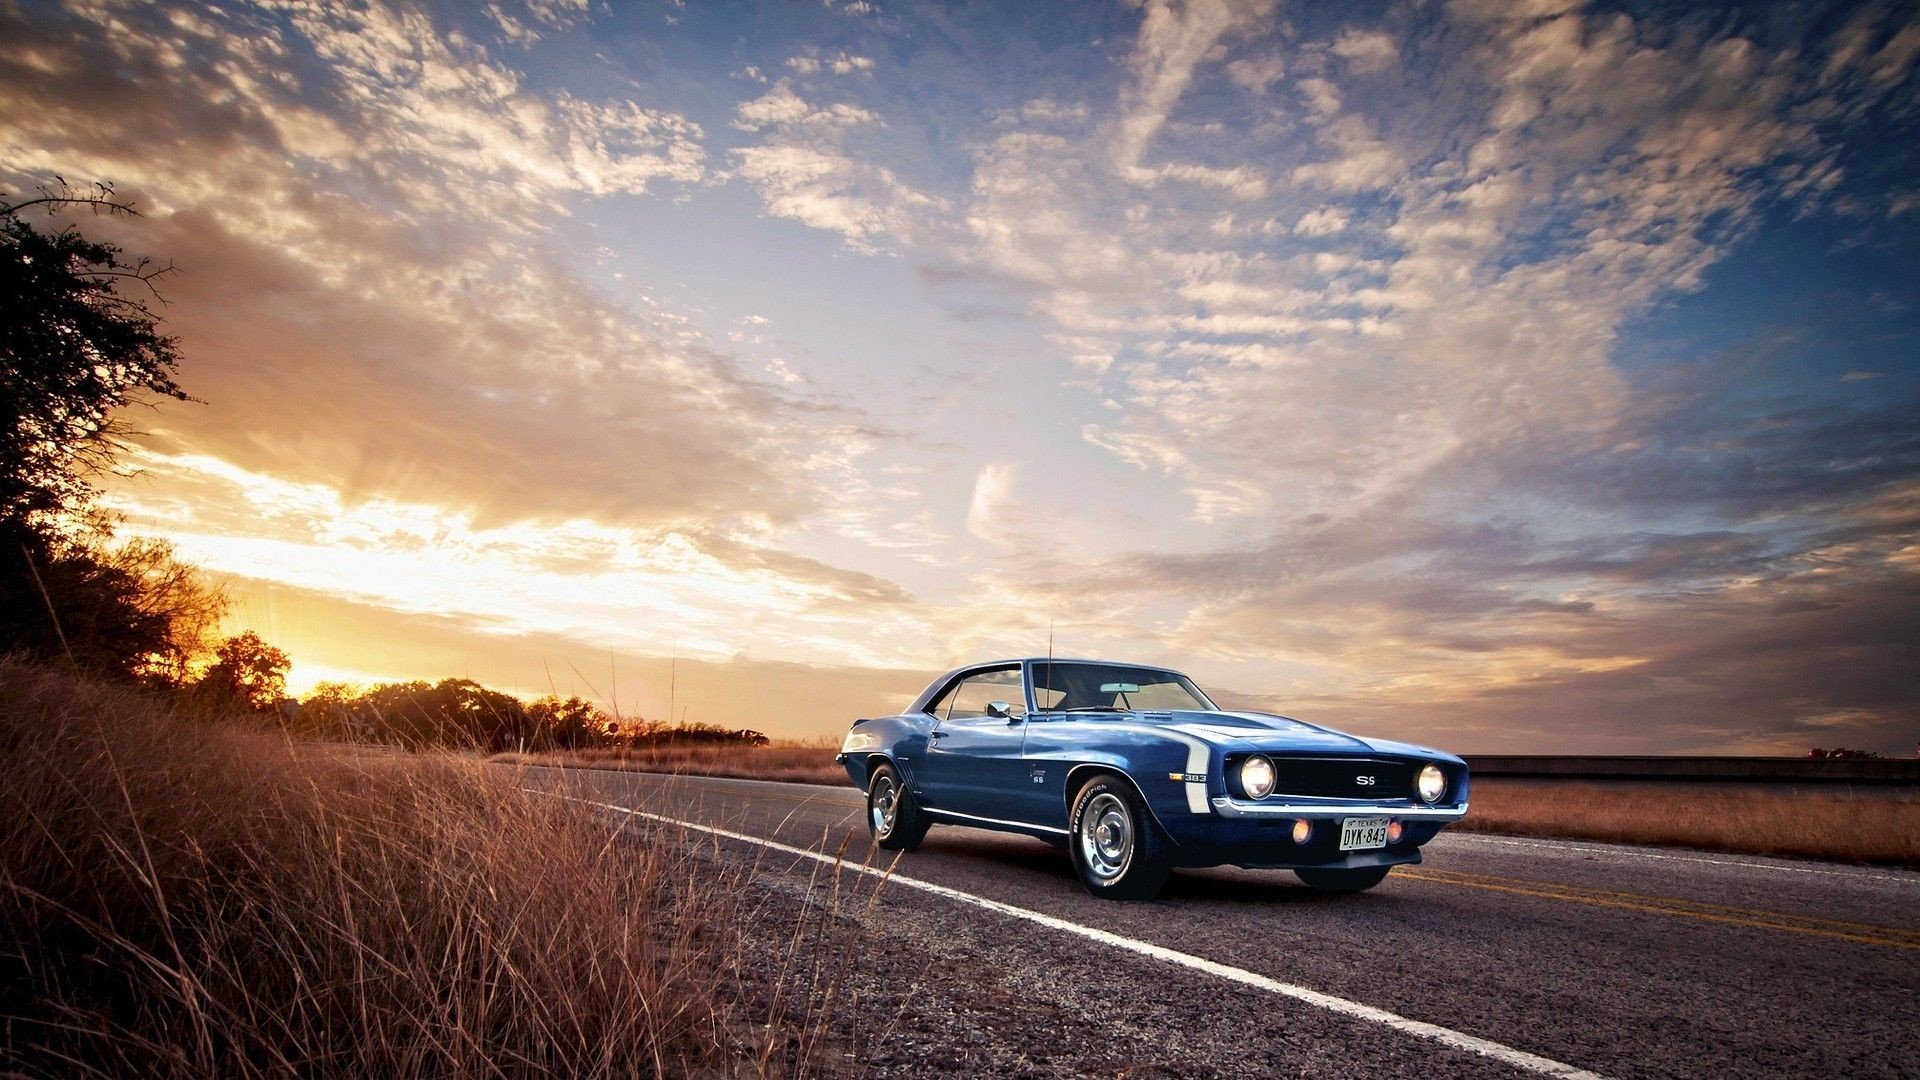 Res: 1920x1080, Old Car Wallpapers Fantastic Images of Old Car Colelction ID XDB